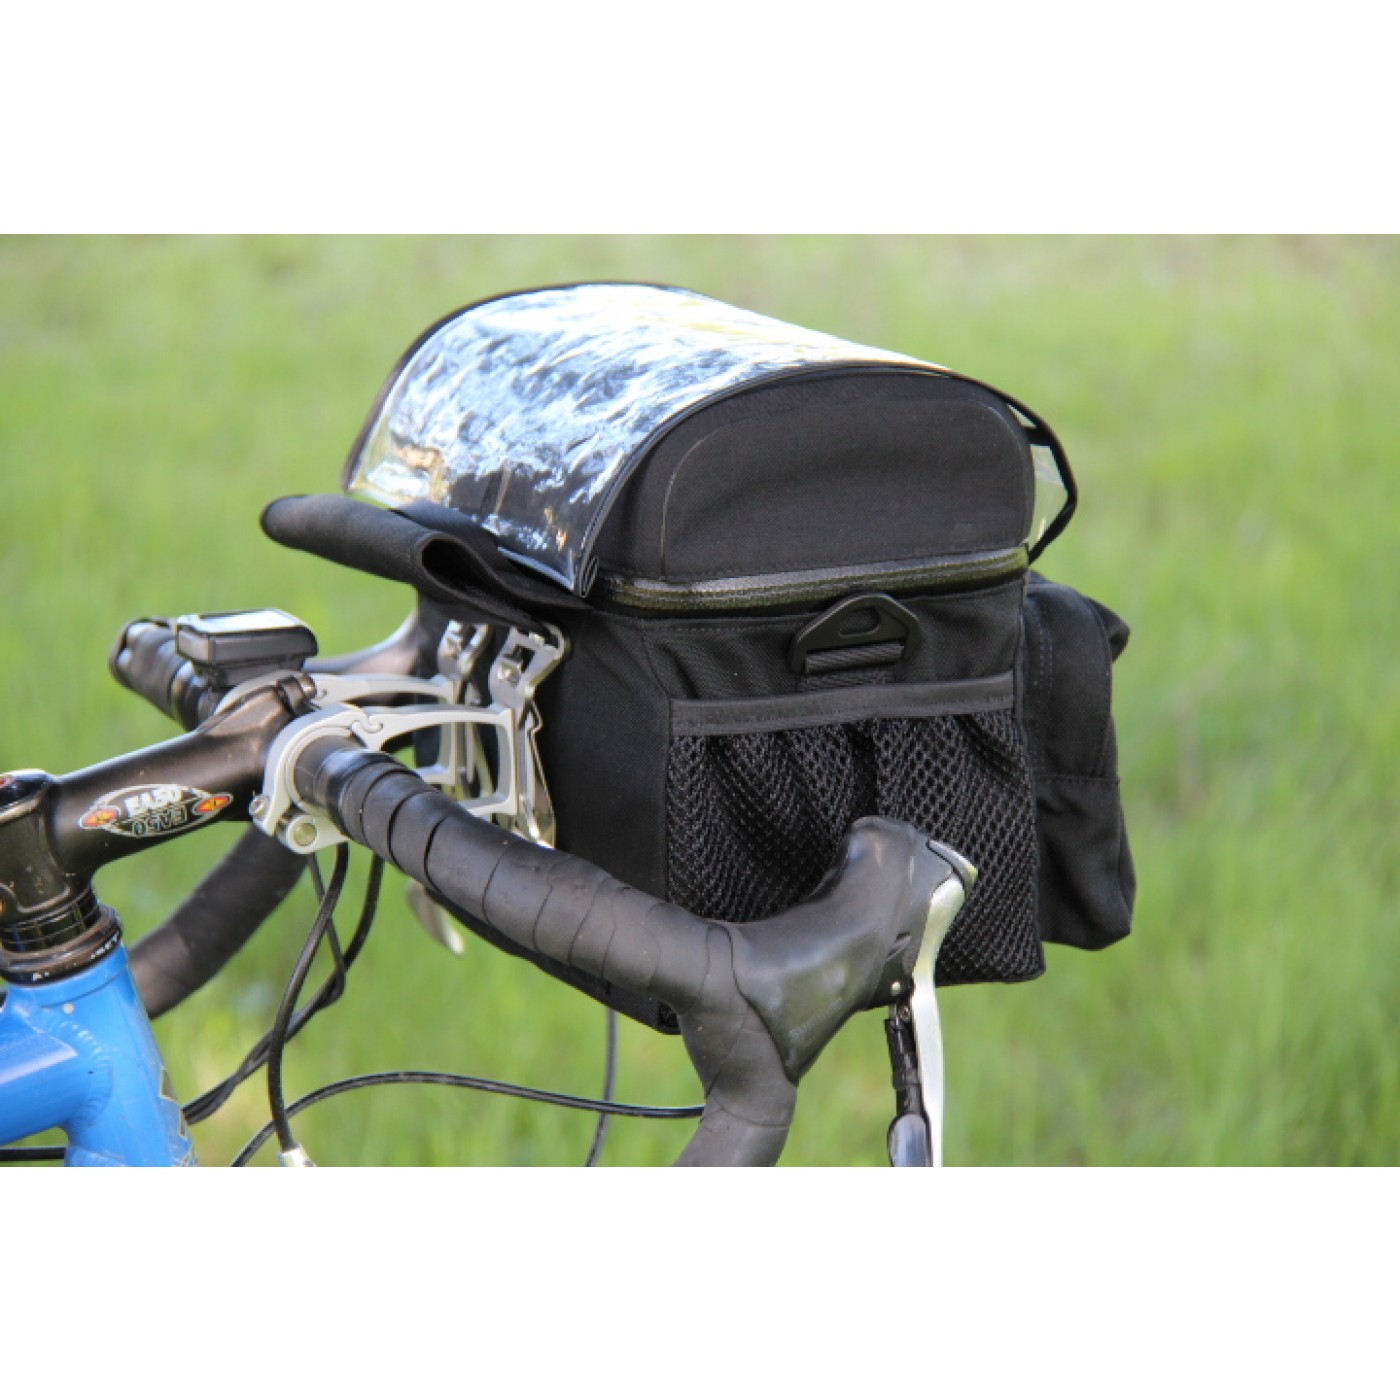 Bicycle Handlebar Bag Small Handlebar Bag By Arkel